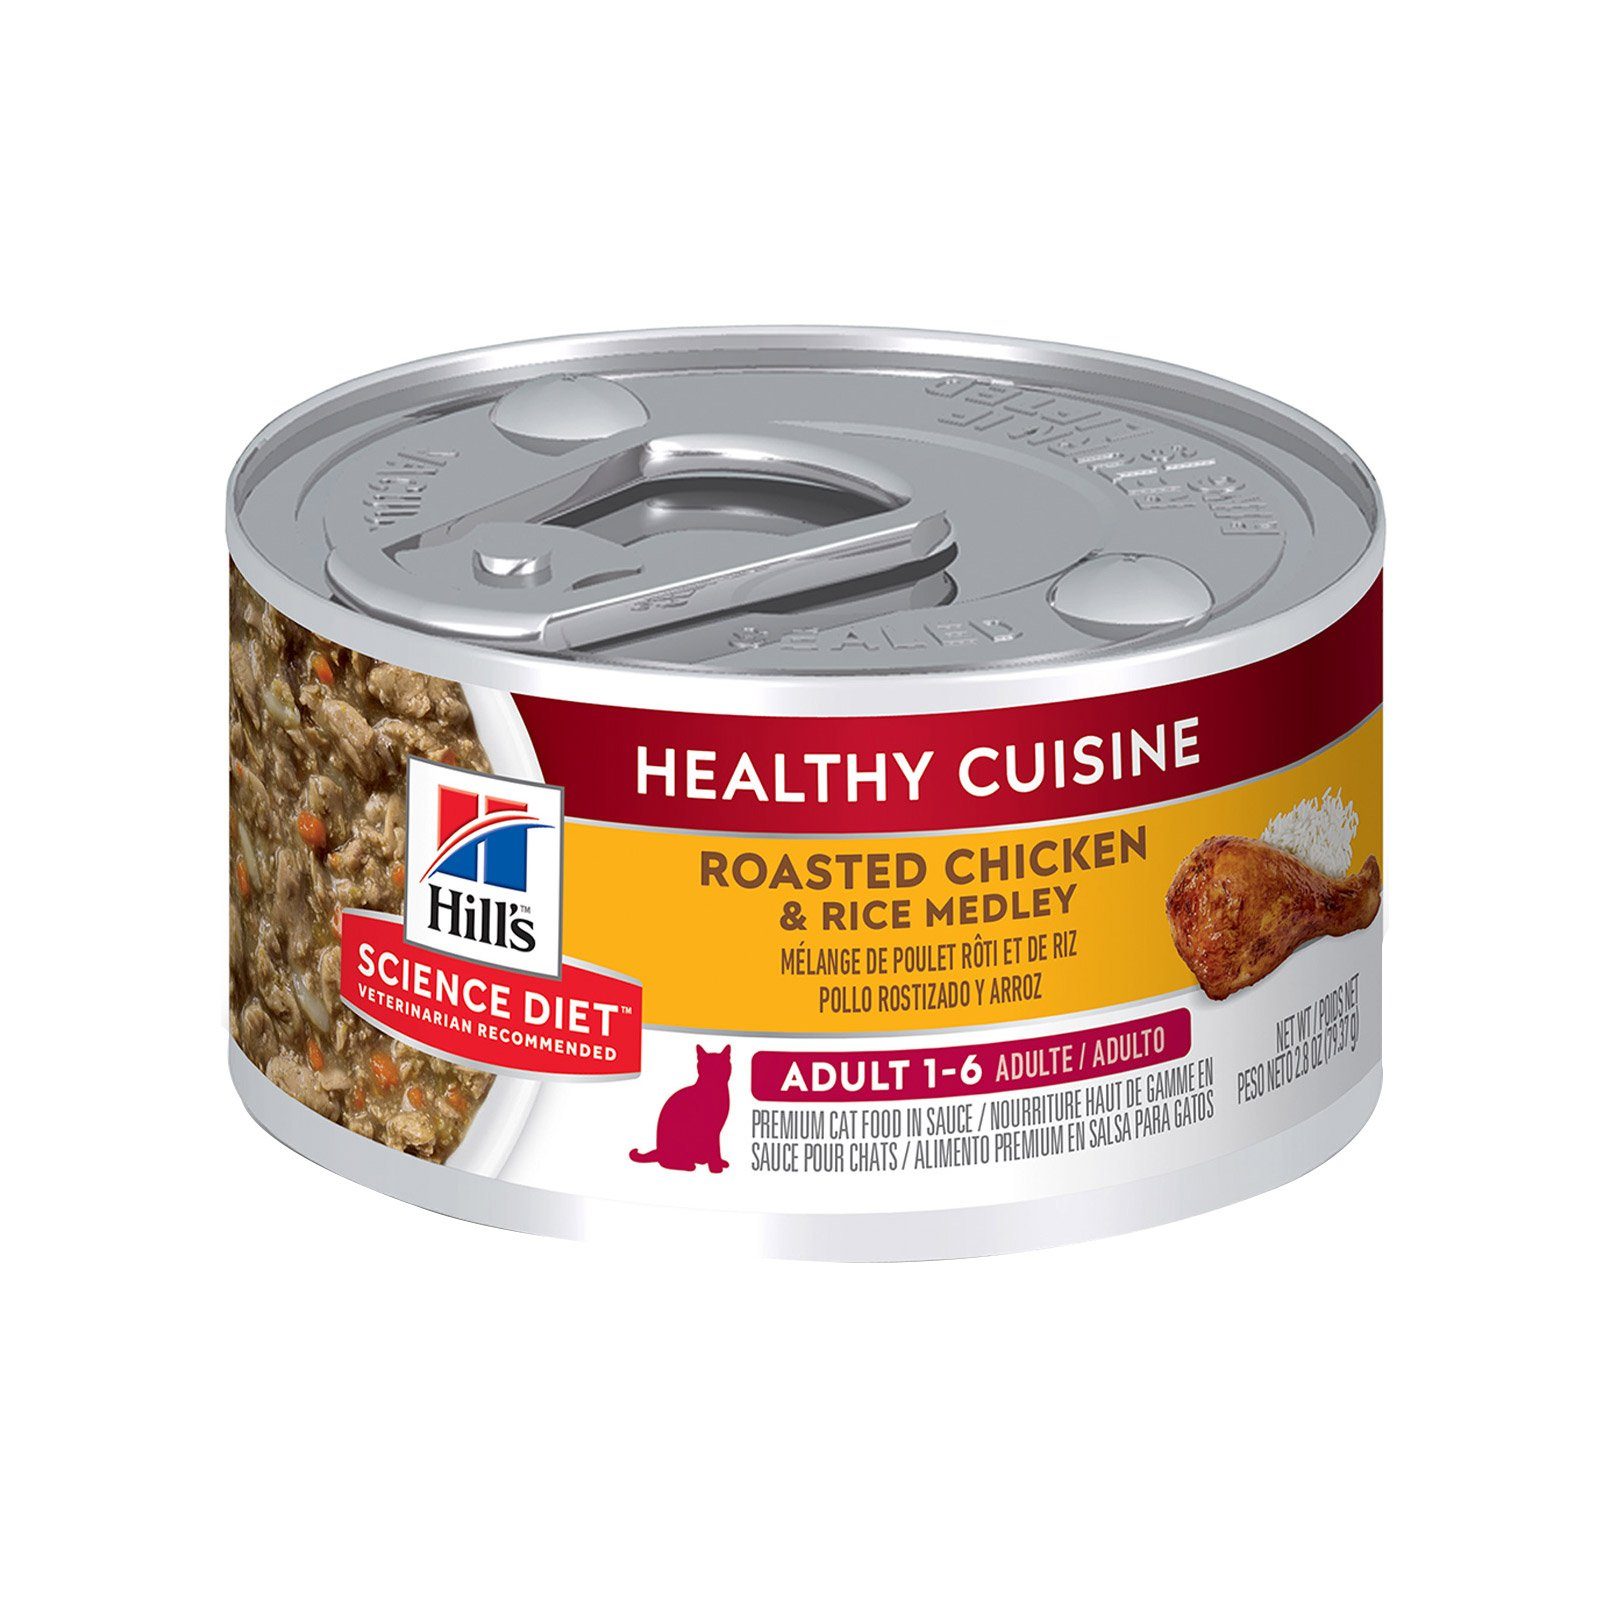 Hill's Science Diet Adult Healthy Cuisine Roasted Chicken & Rice Medley Canned Cat Food